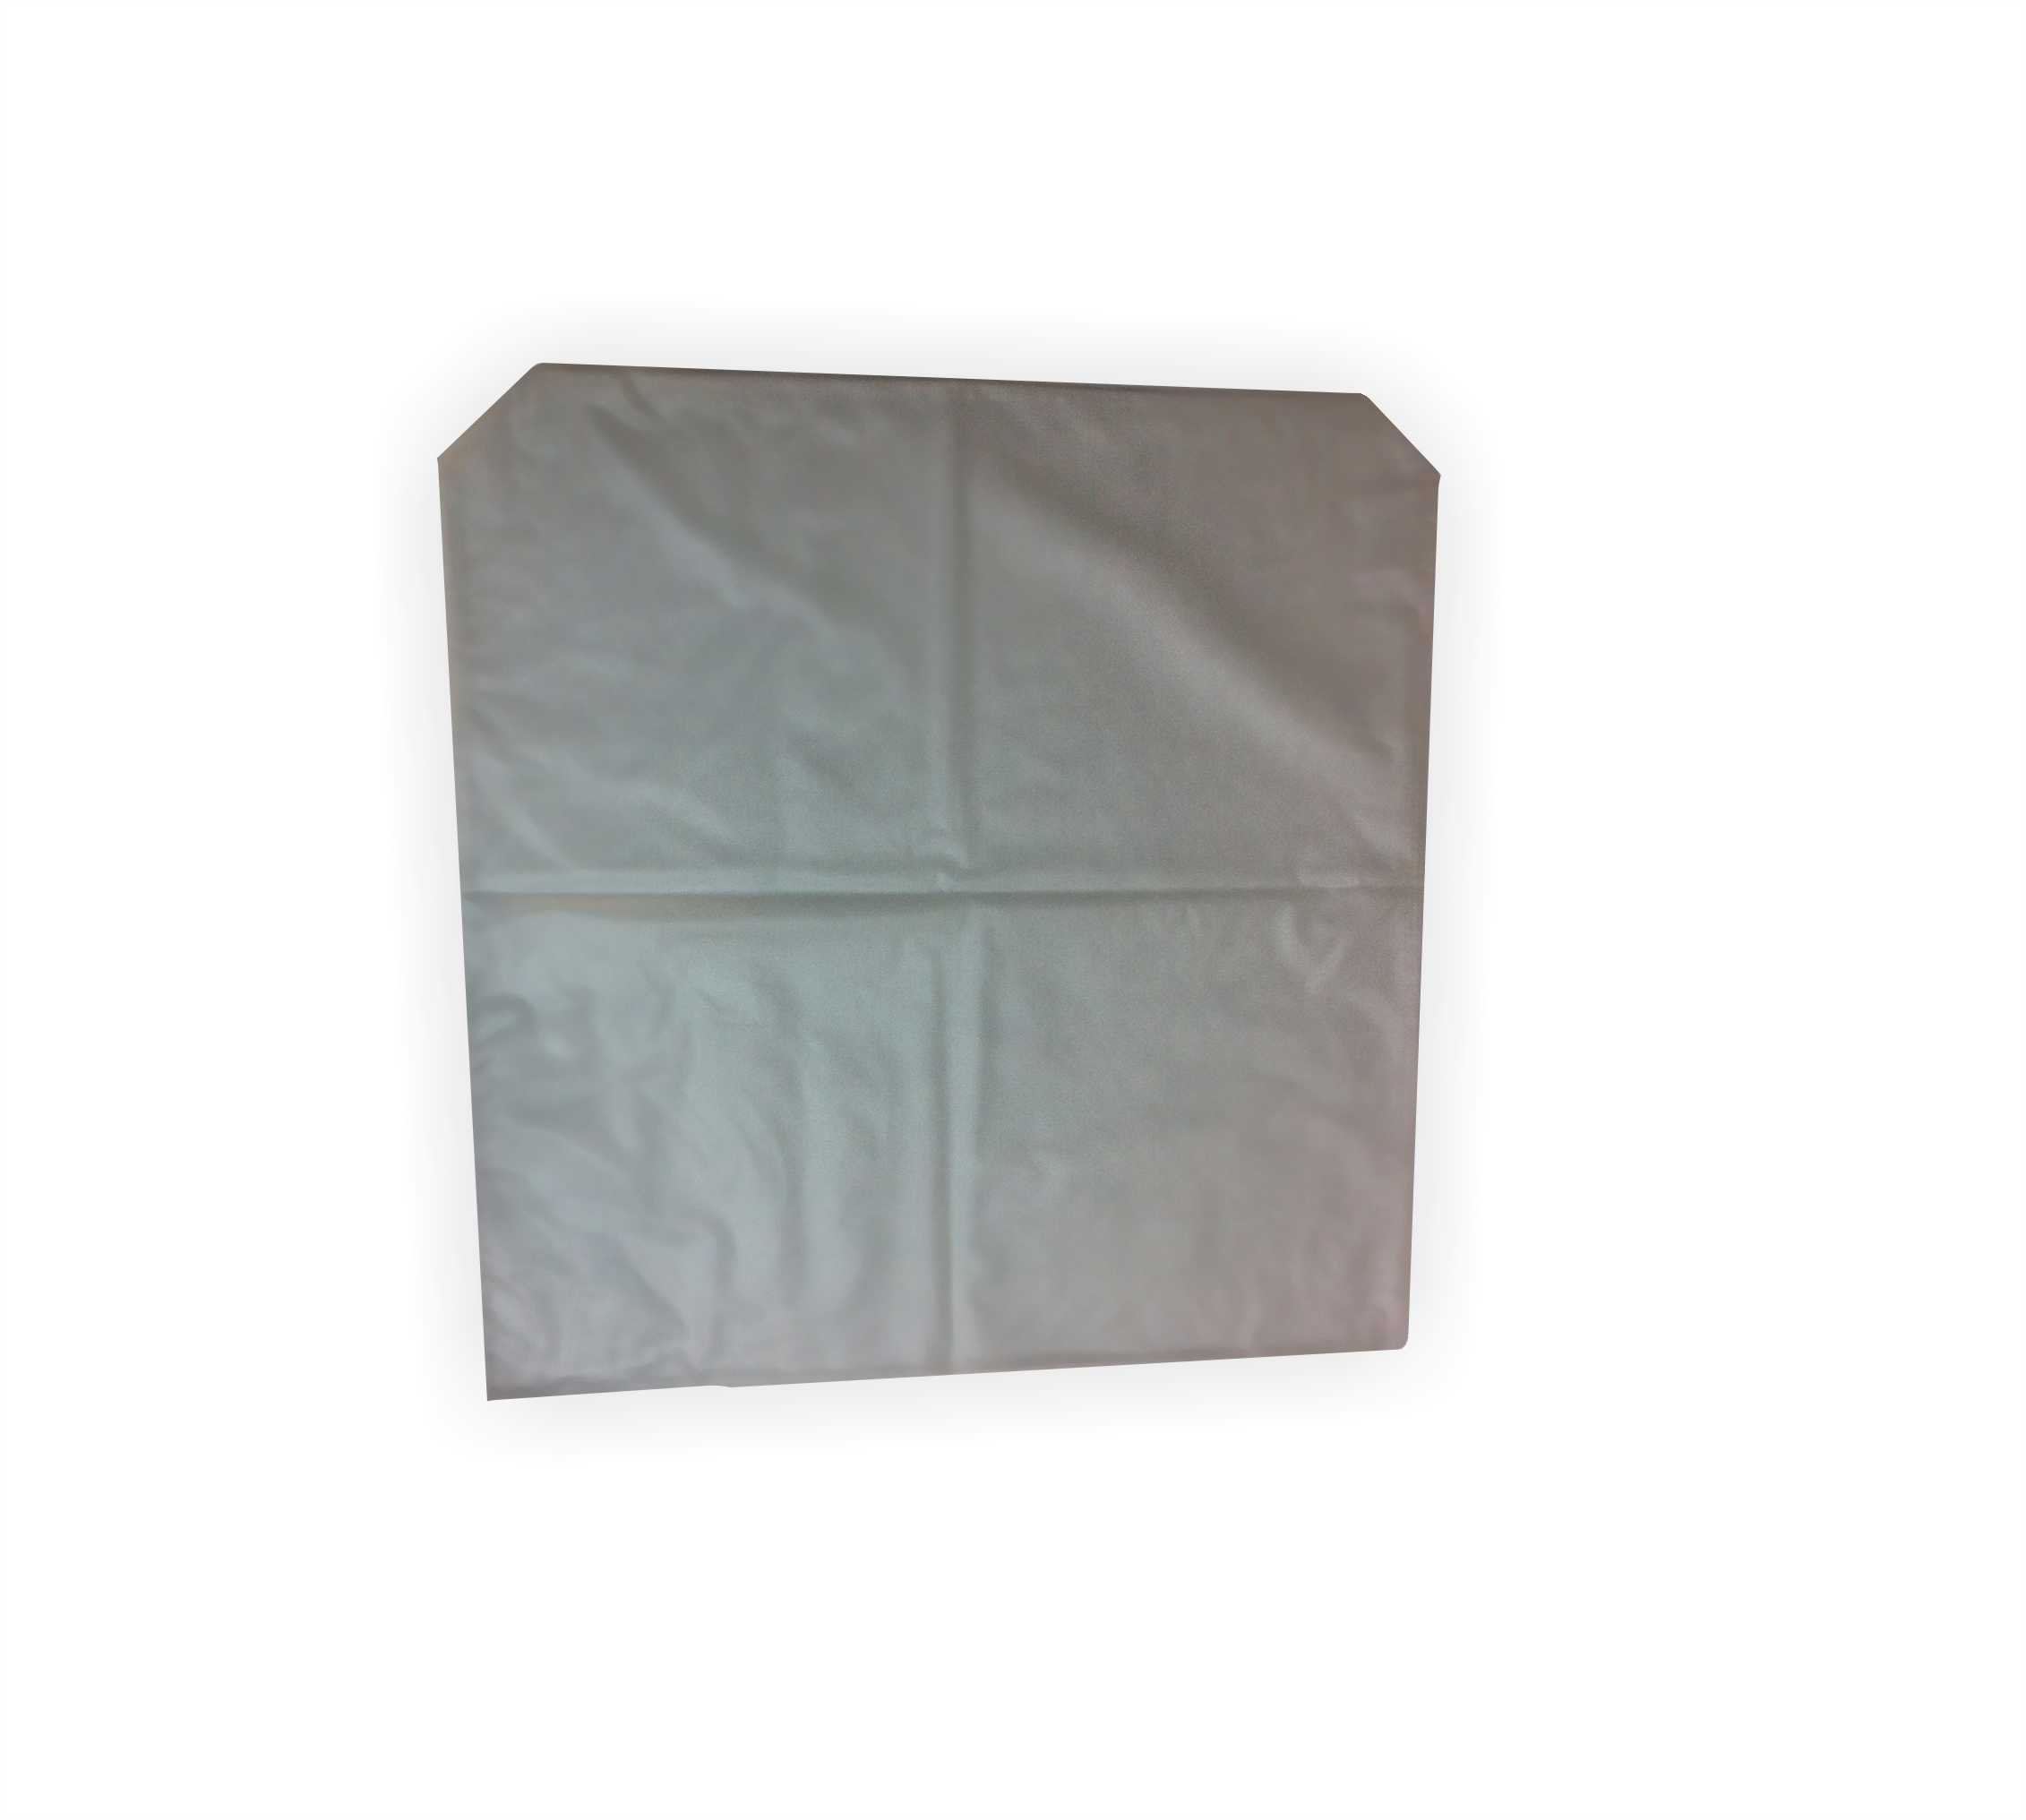 Dust Cover designed for Full Size Industry Standard Microscopes. 22'' Wide x 22'' High by Viziflex